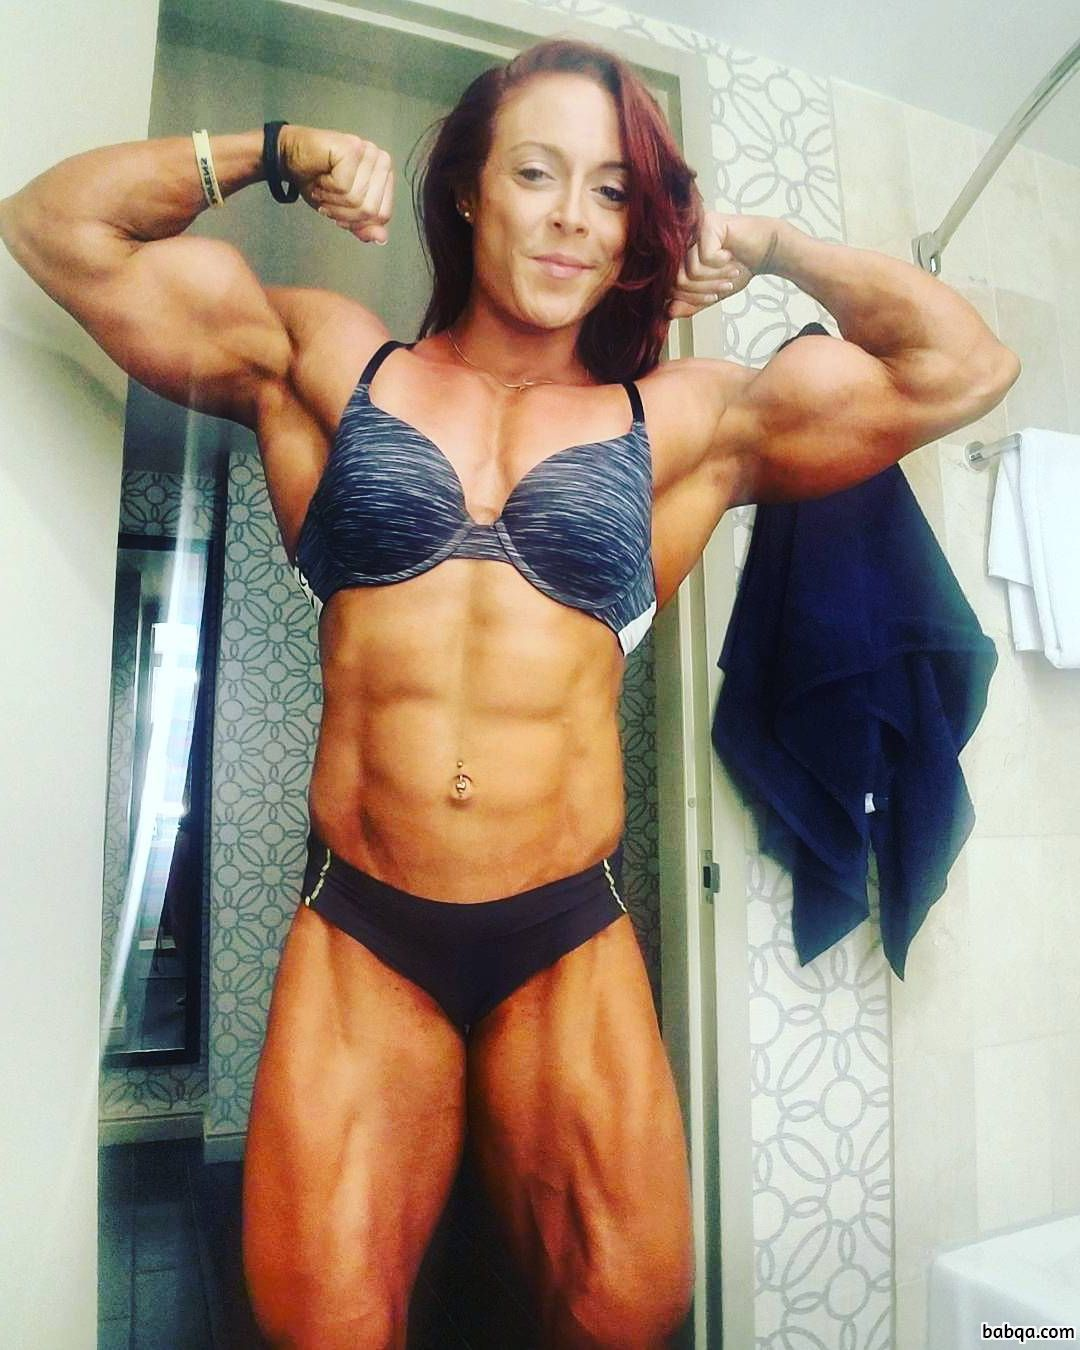 awesome chick with muscular body and toned arms repost from insta